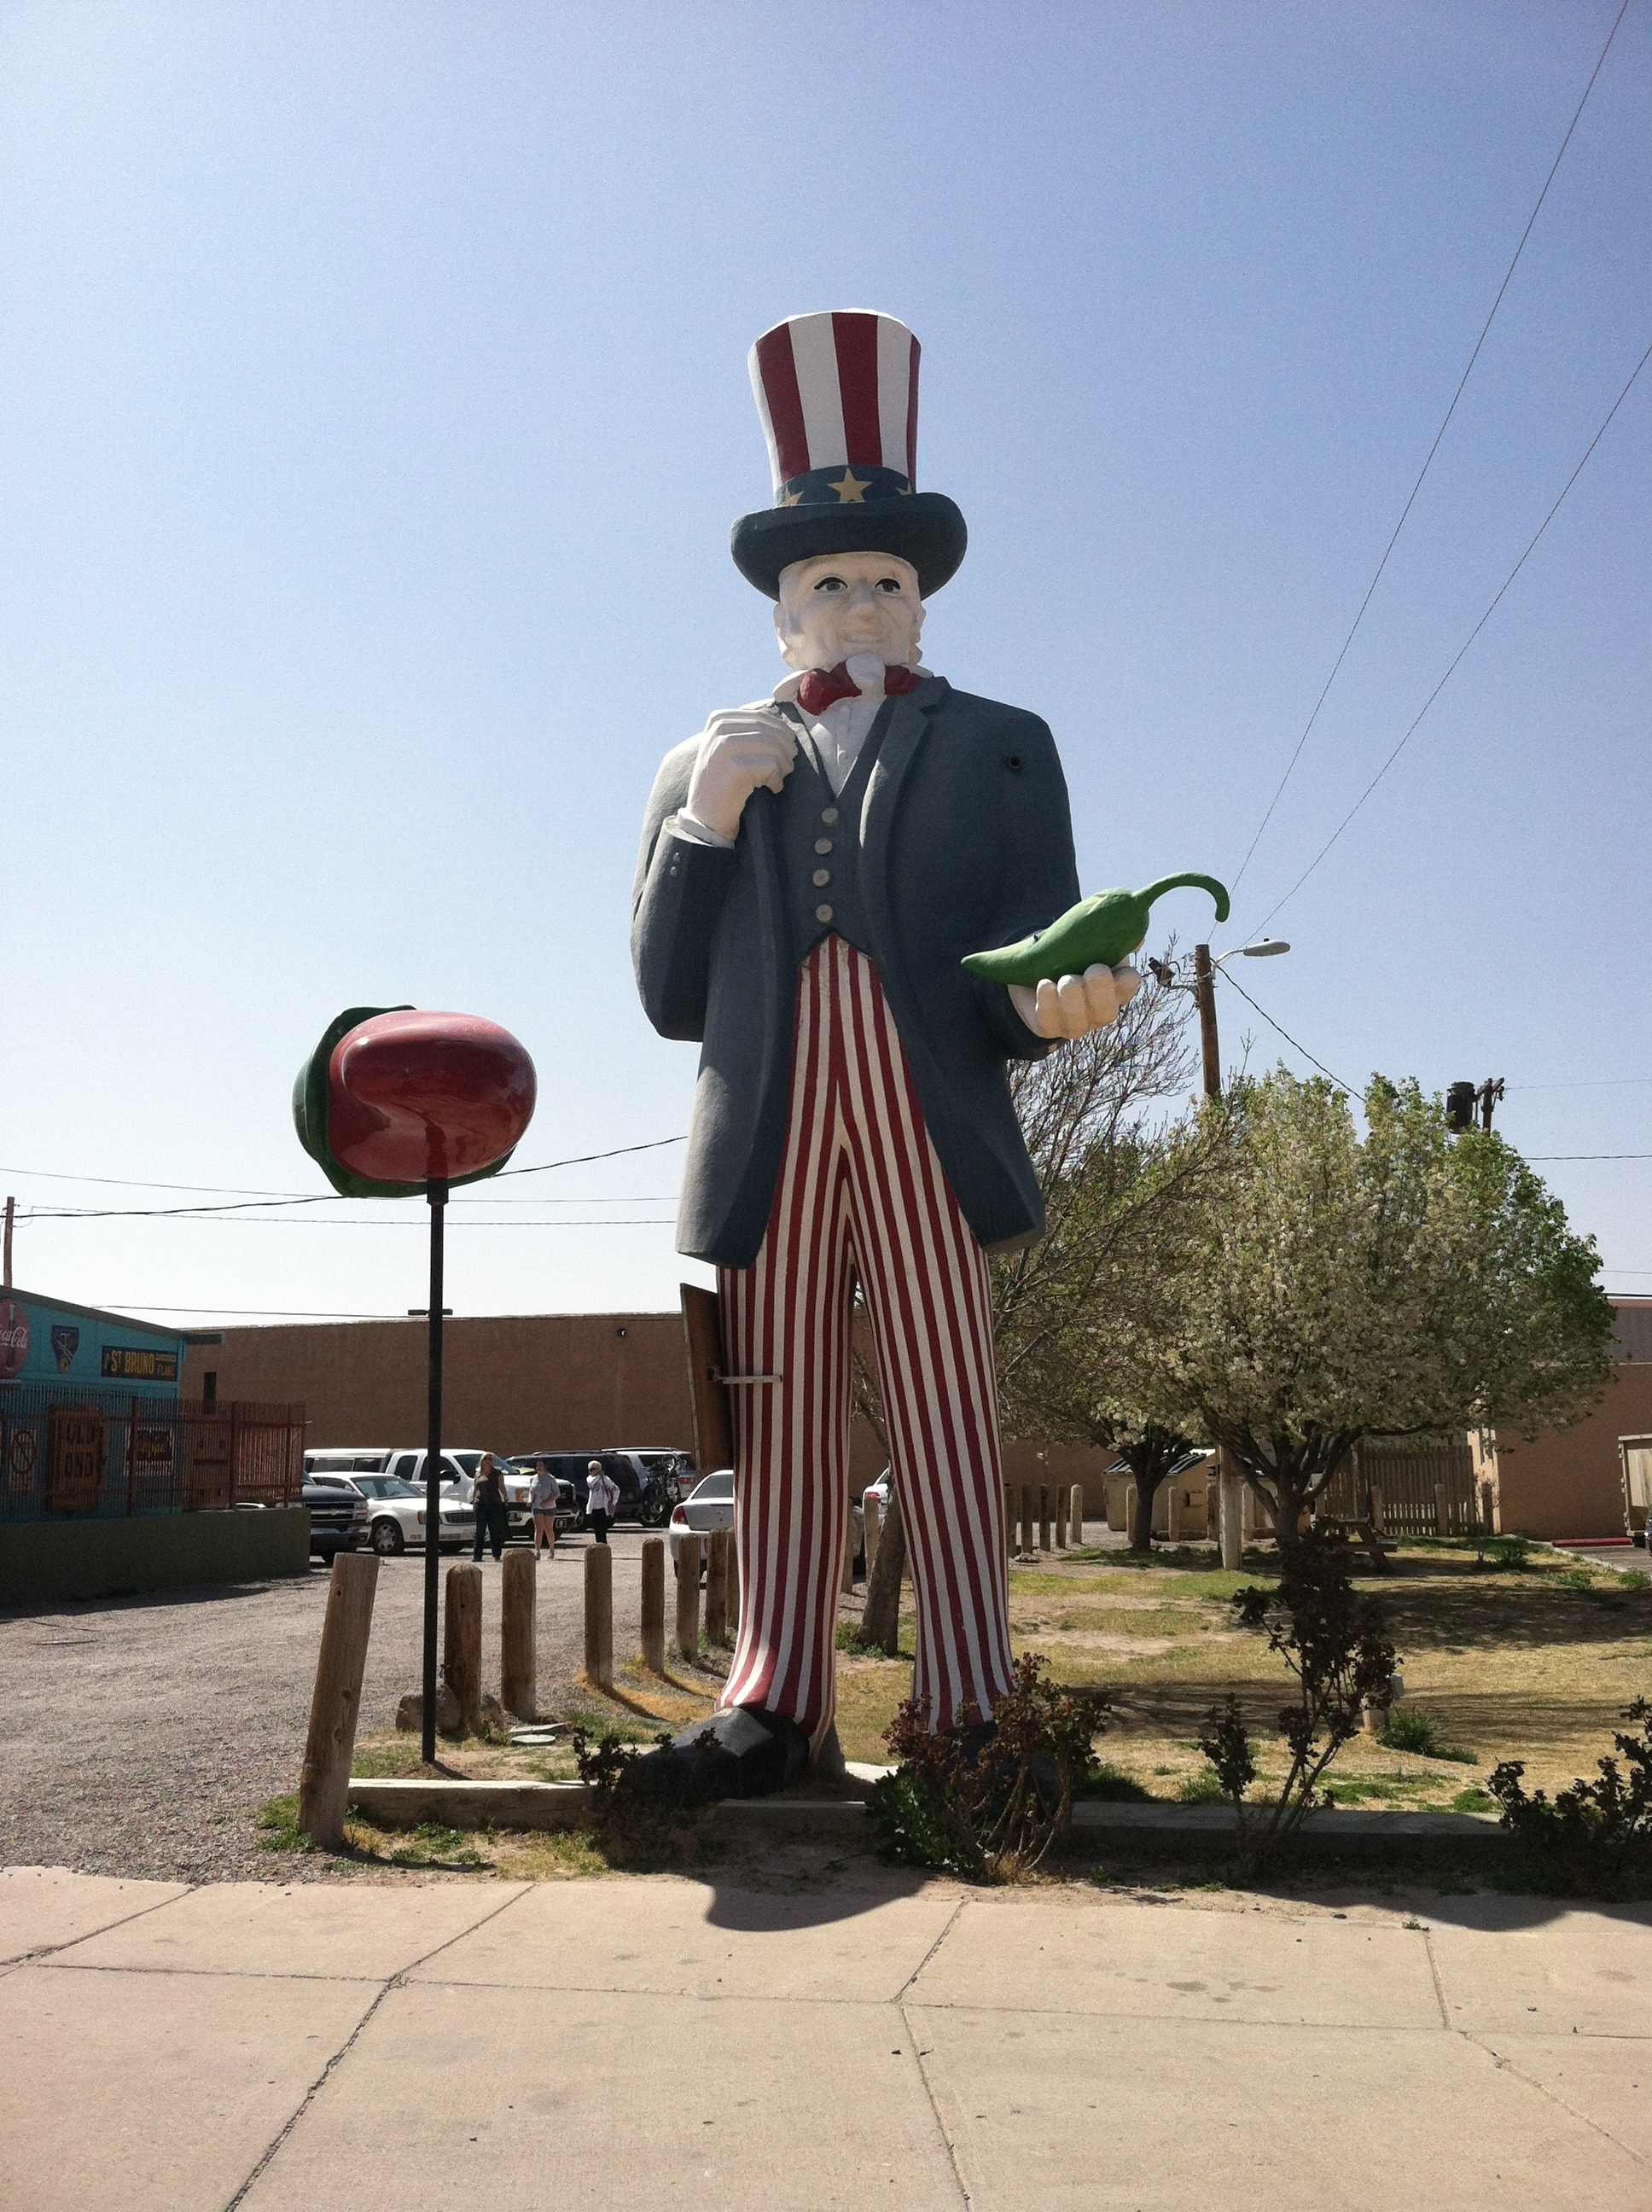 Hatch, NM likes their overinflated, unrelated, large plastic figures. Strange...